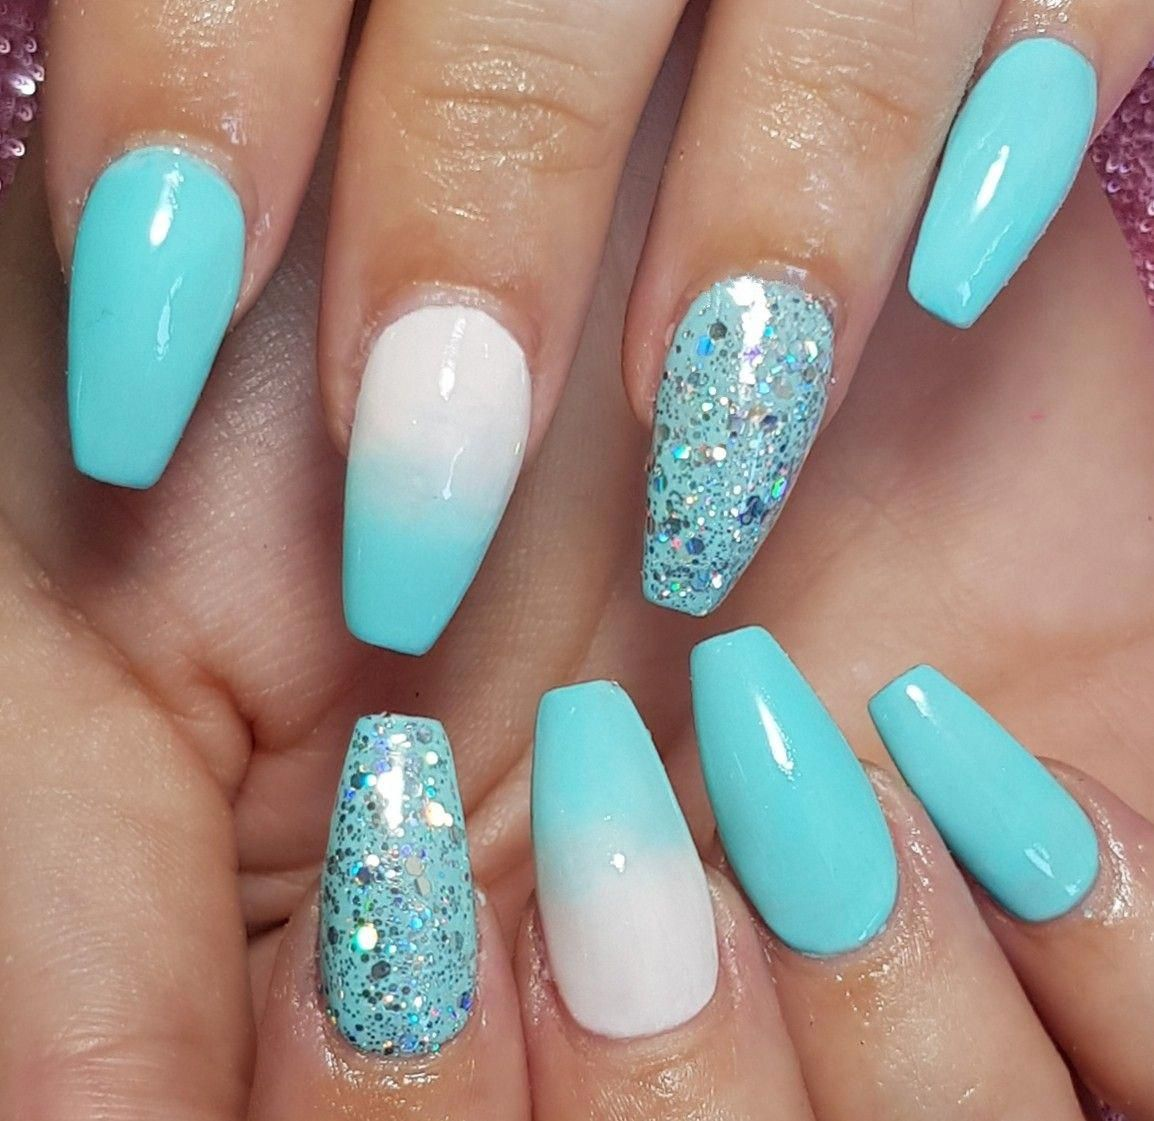 76 Fabulous Brown Ombre Hair Color Ideas In 2020 With Images Turquoise Nails Aqua Nails Blue Glitter Nails